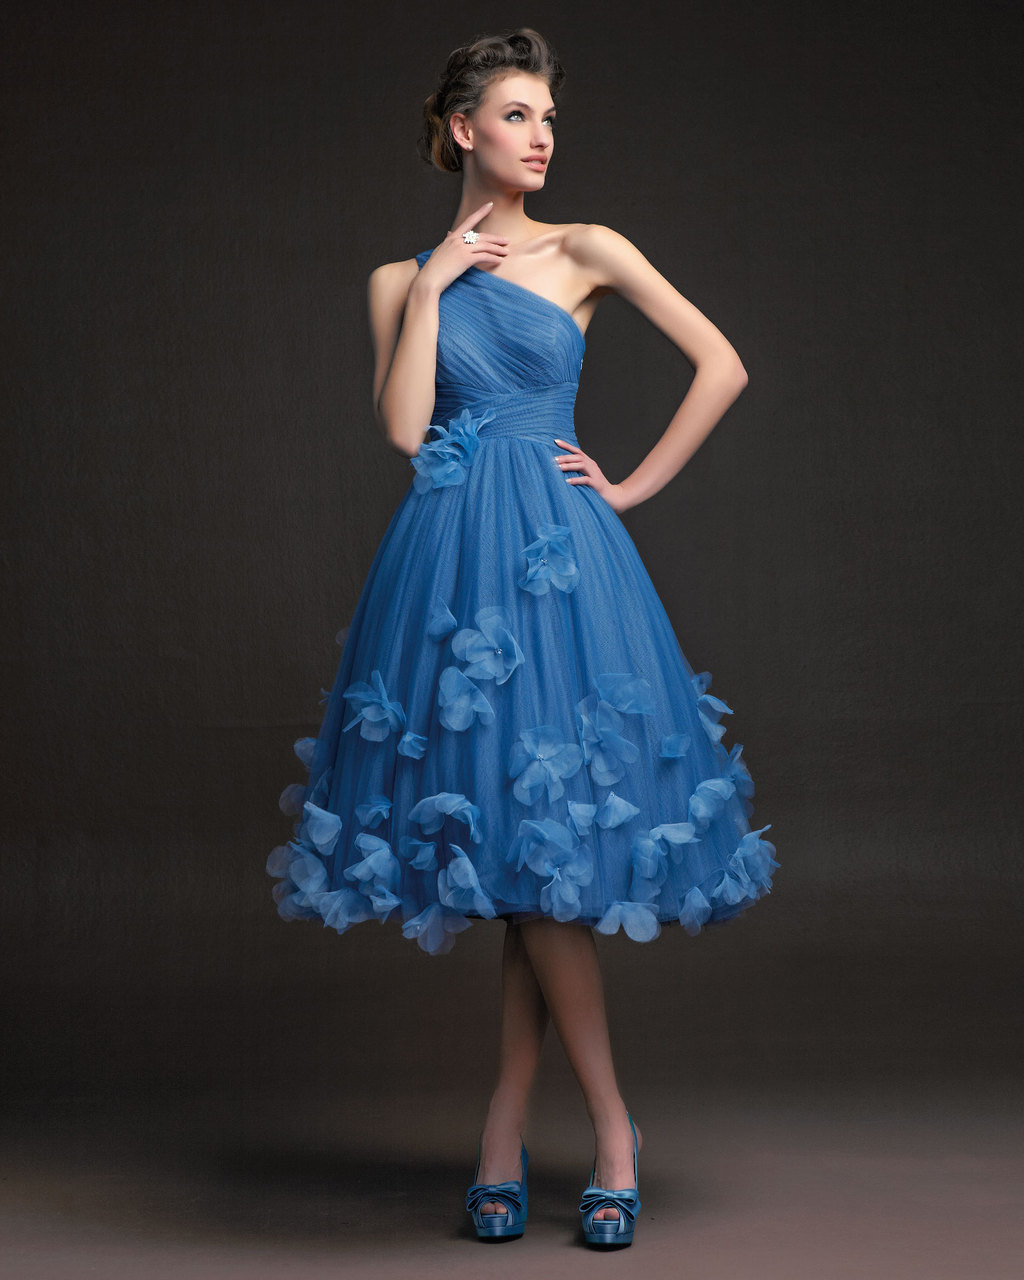 Gorgeous-2014-bridesmaid-dresses-from-aire-barcelona-blue-one-shoulder-retro-inspired.full